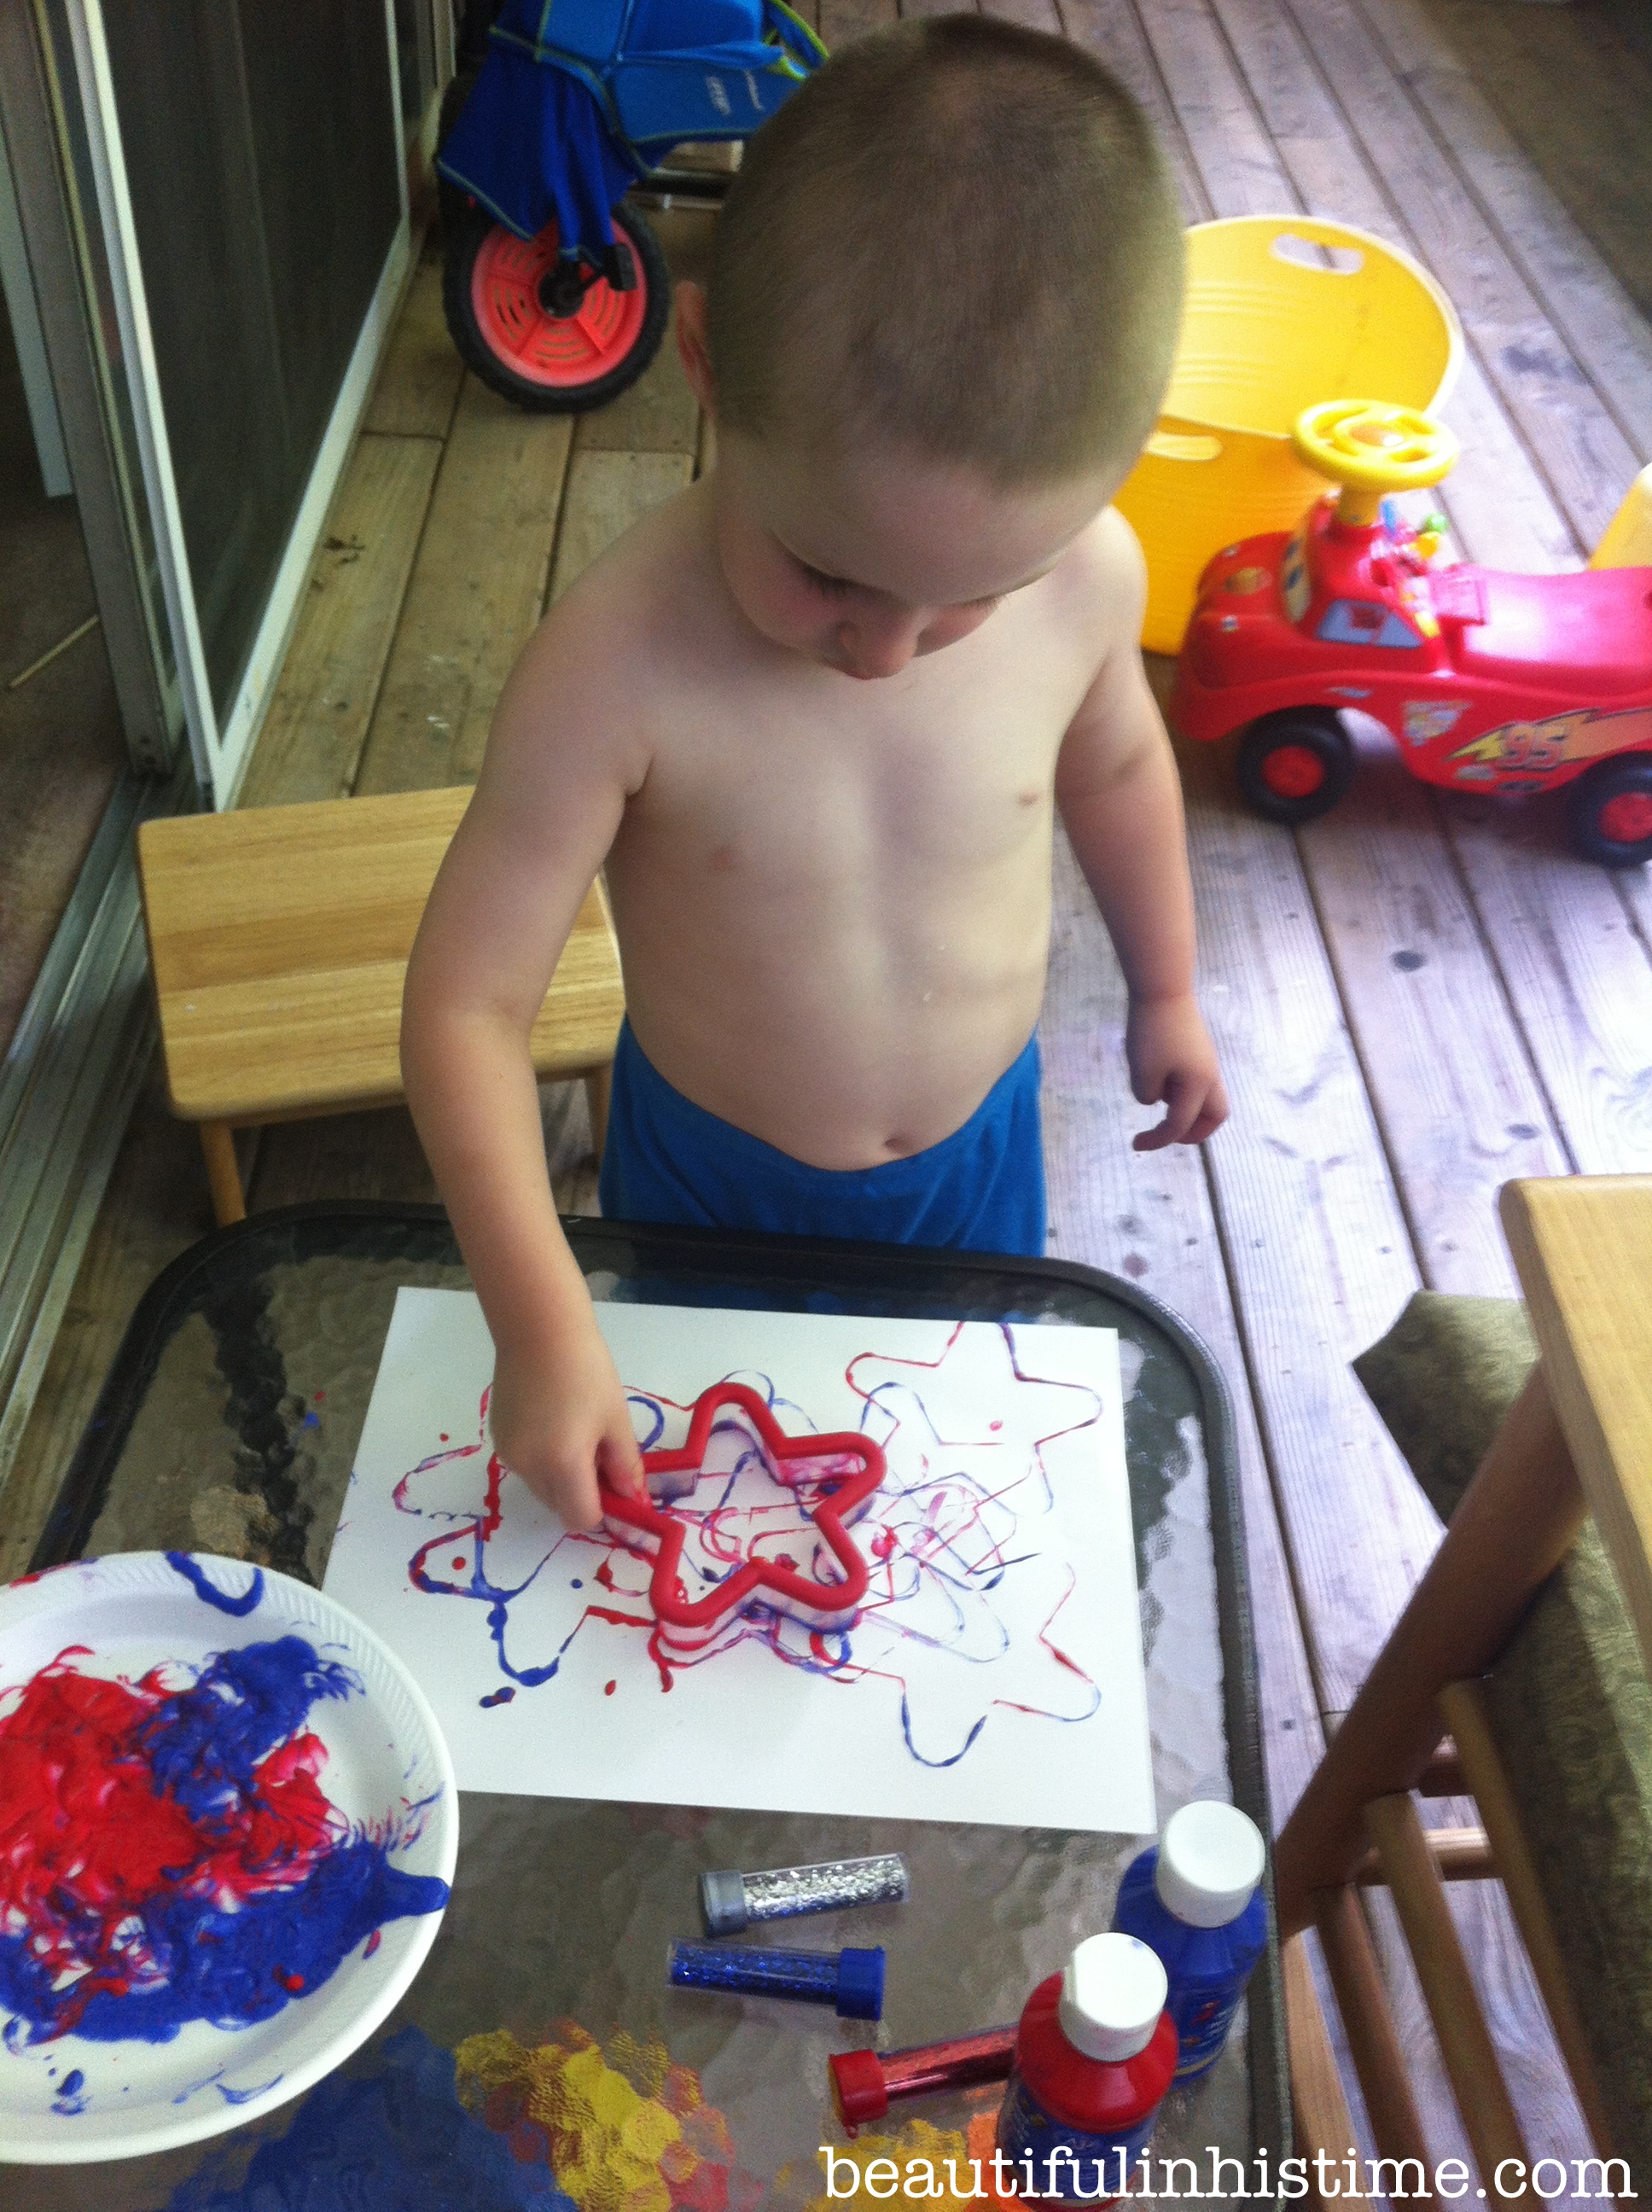 star cookie cutter painting #patriotic #preschool unit #4thofjuly #homeschool #independenceday